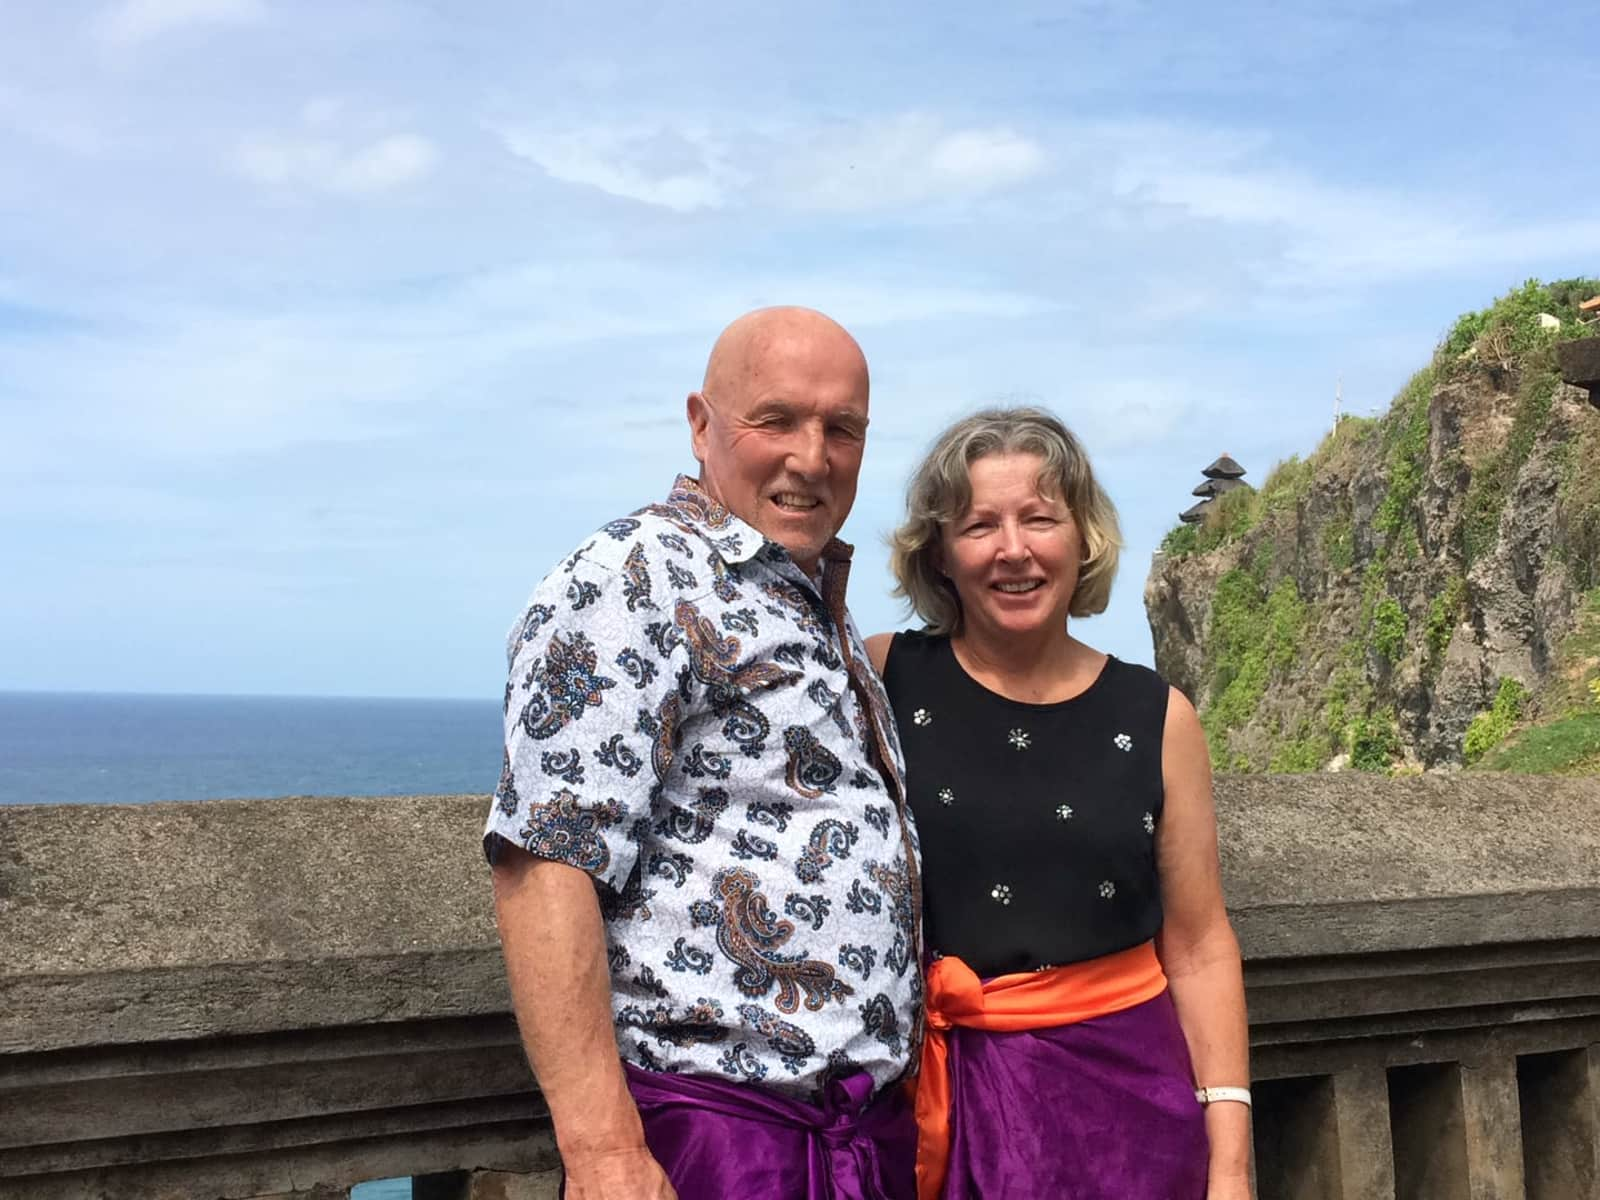 Robyn & Peter from Hamilton, New Zealand